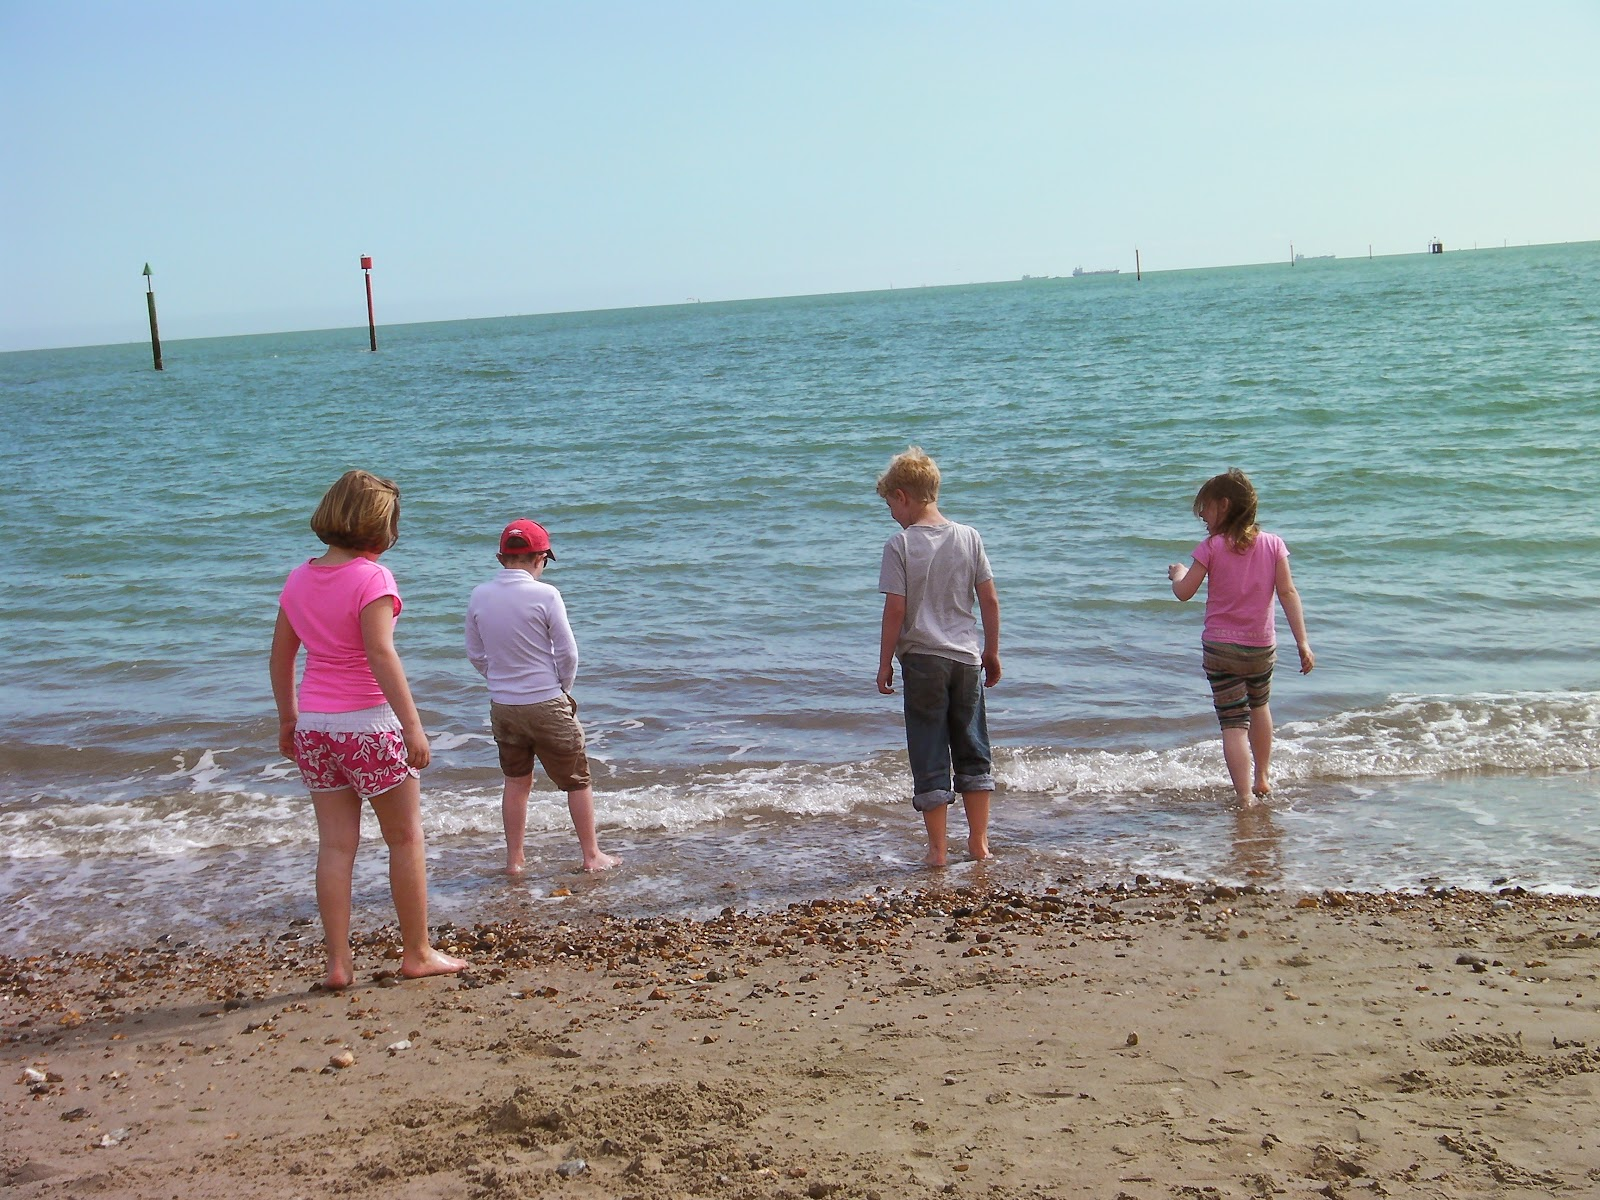 kids pissing into the sea by southsea beach